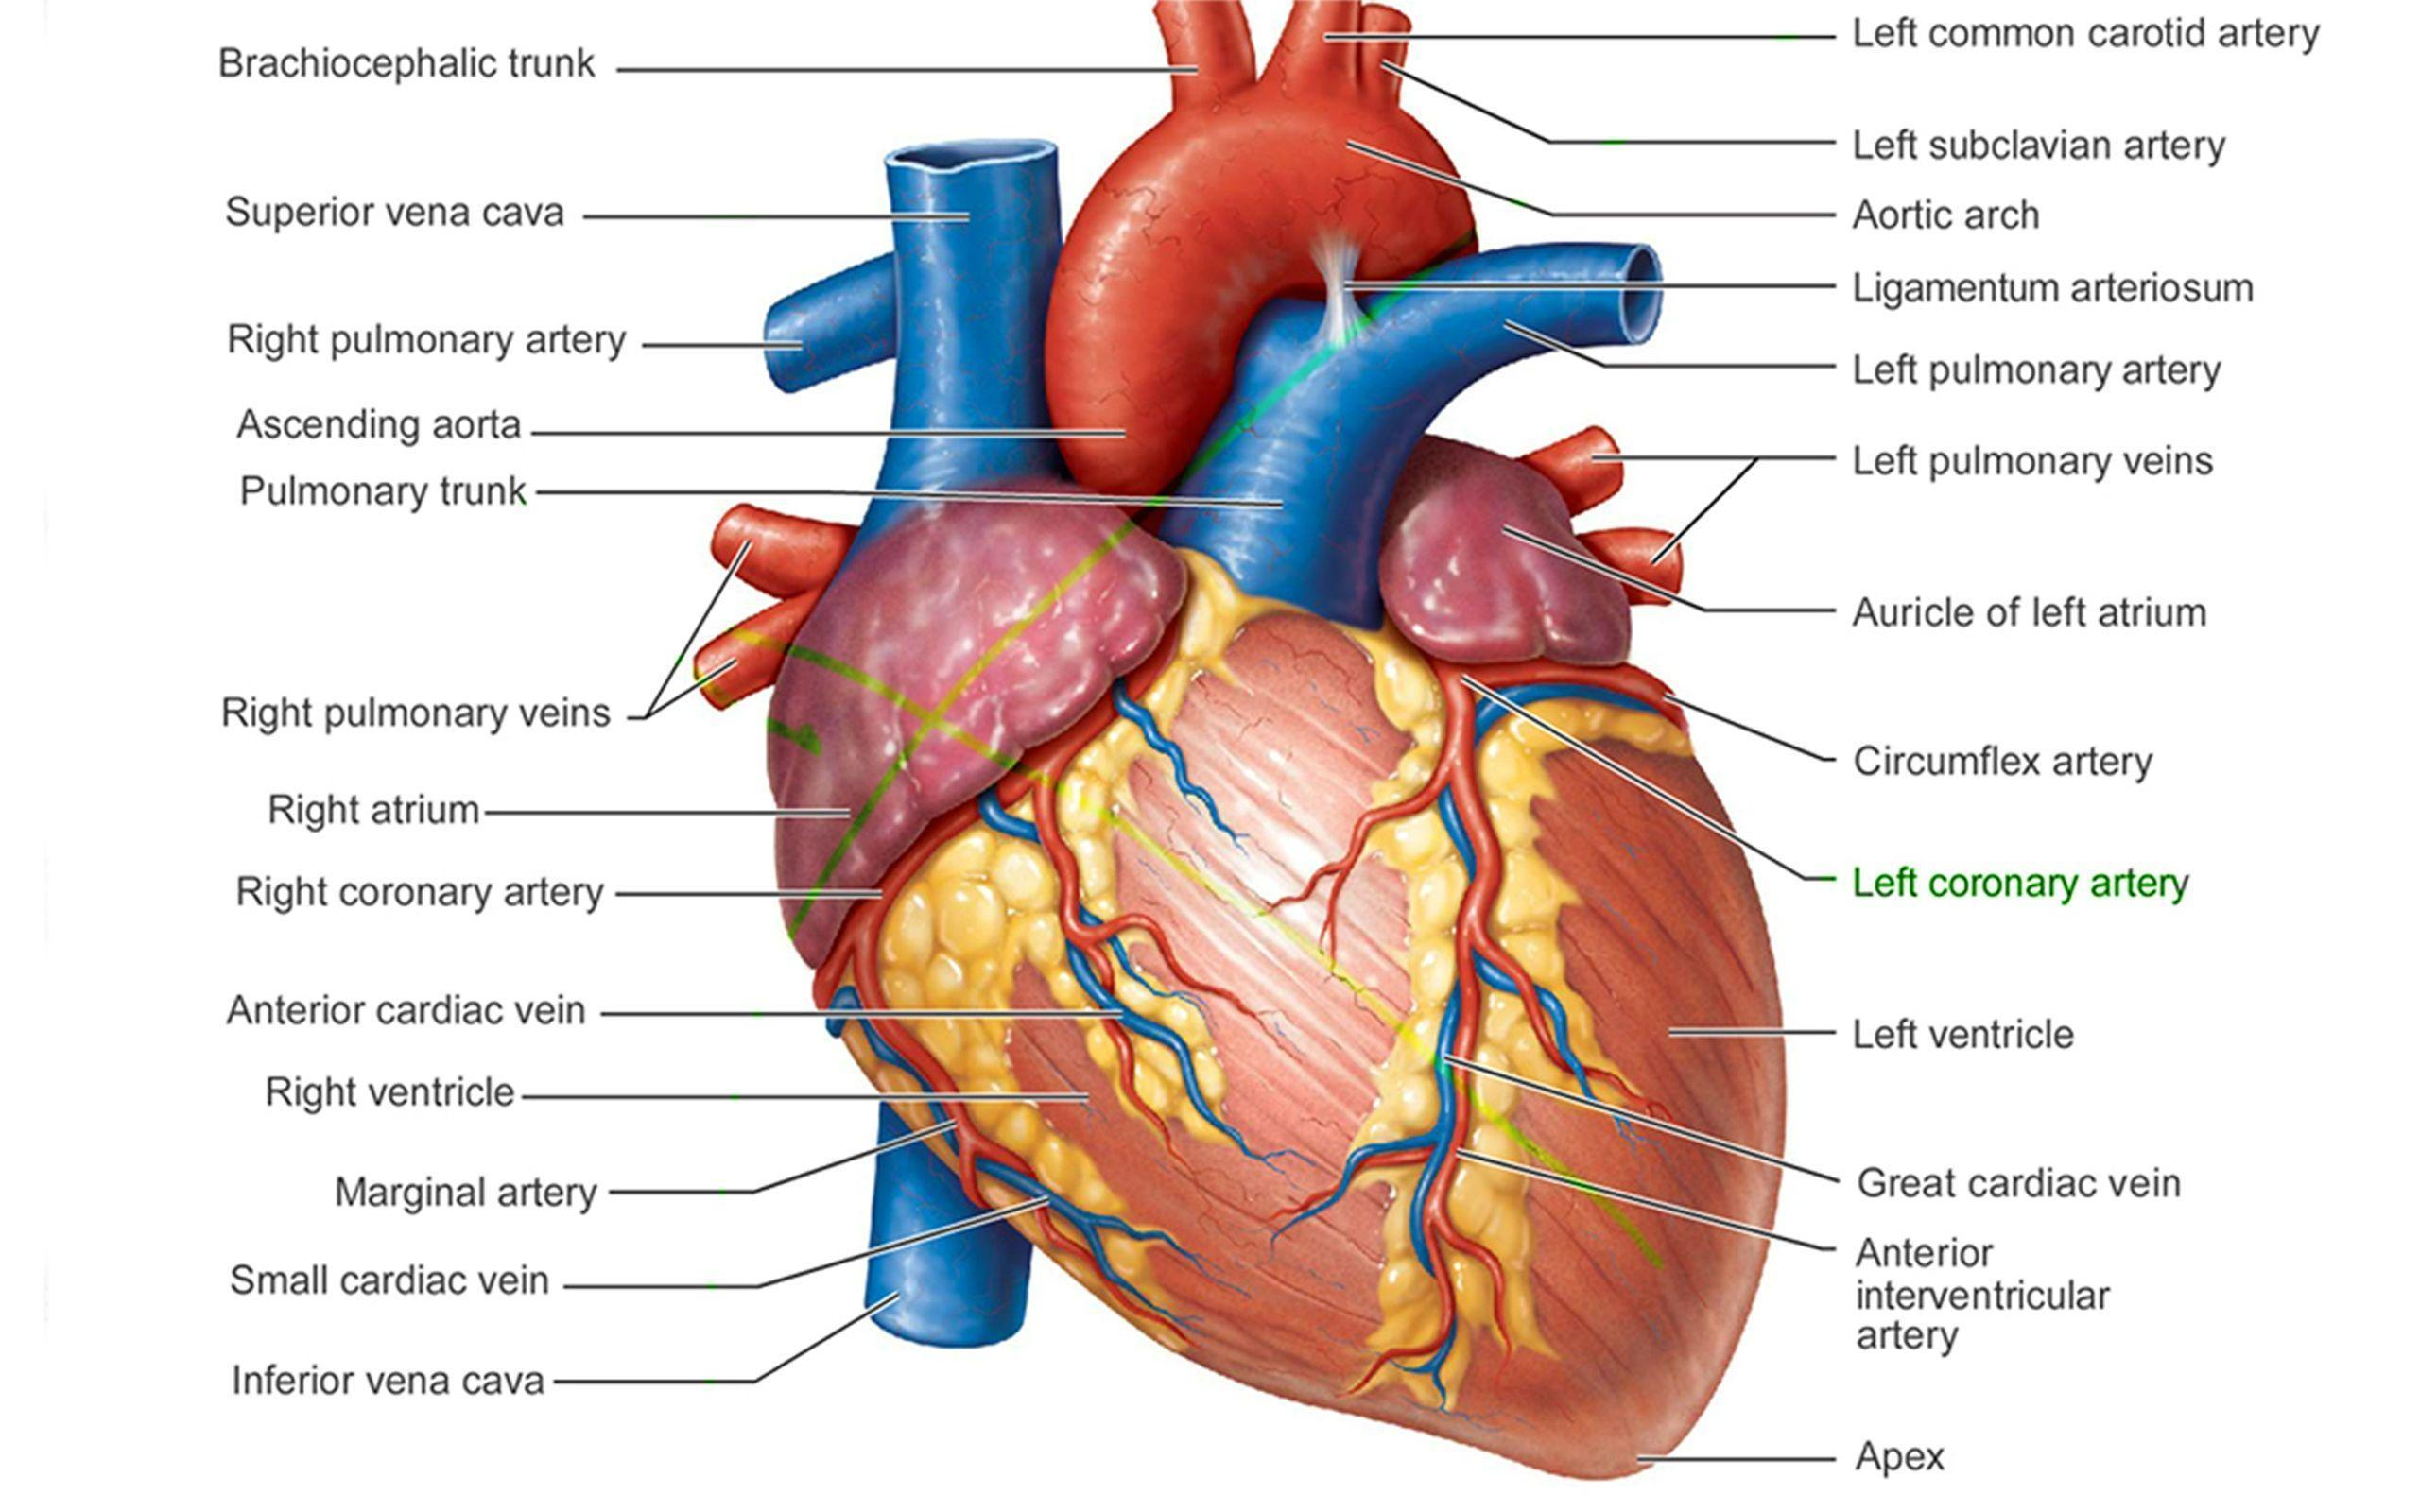 Pictures Of Human Heart Anatomy Anatomy Of The Human Heart 4k ...